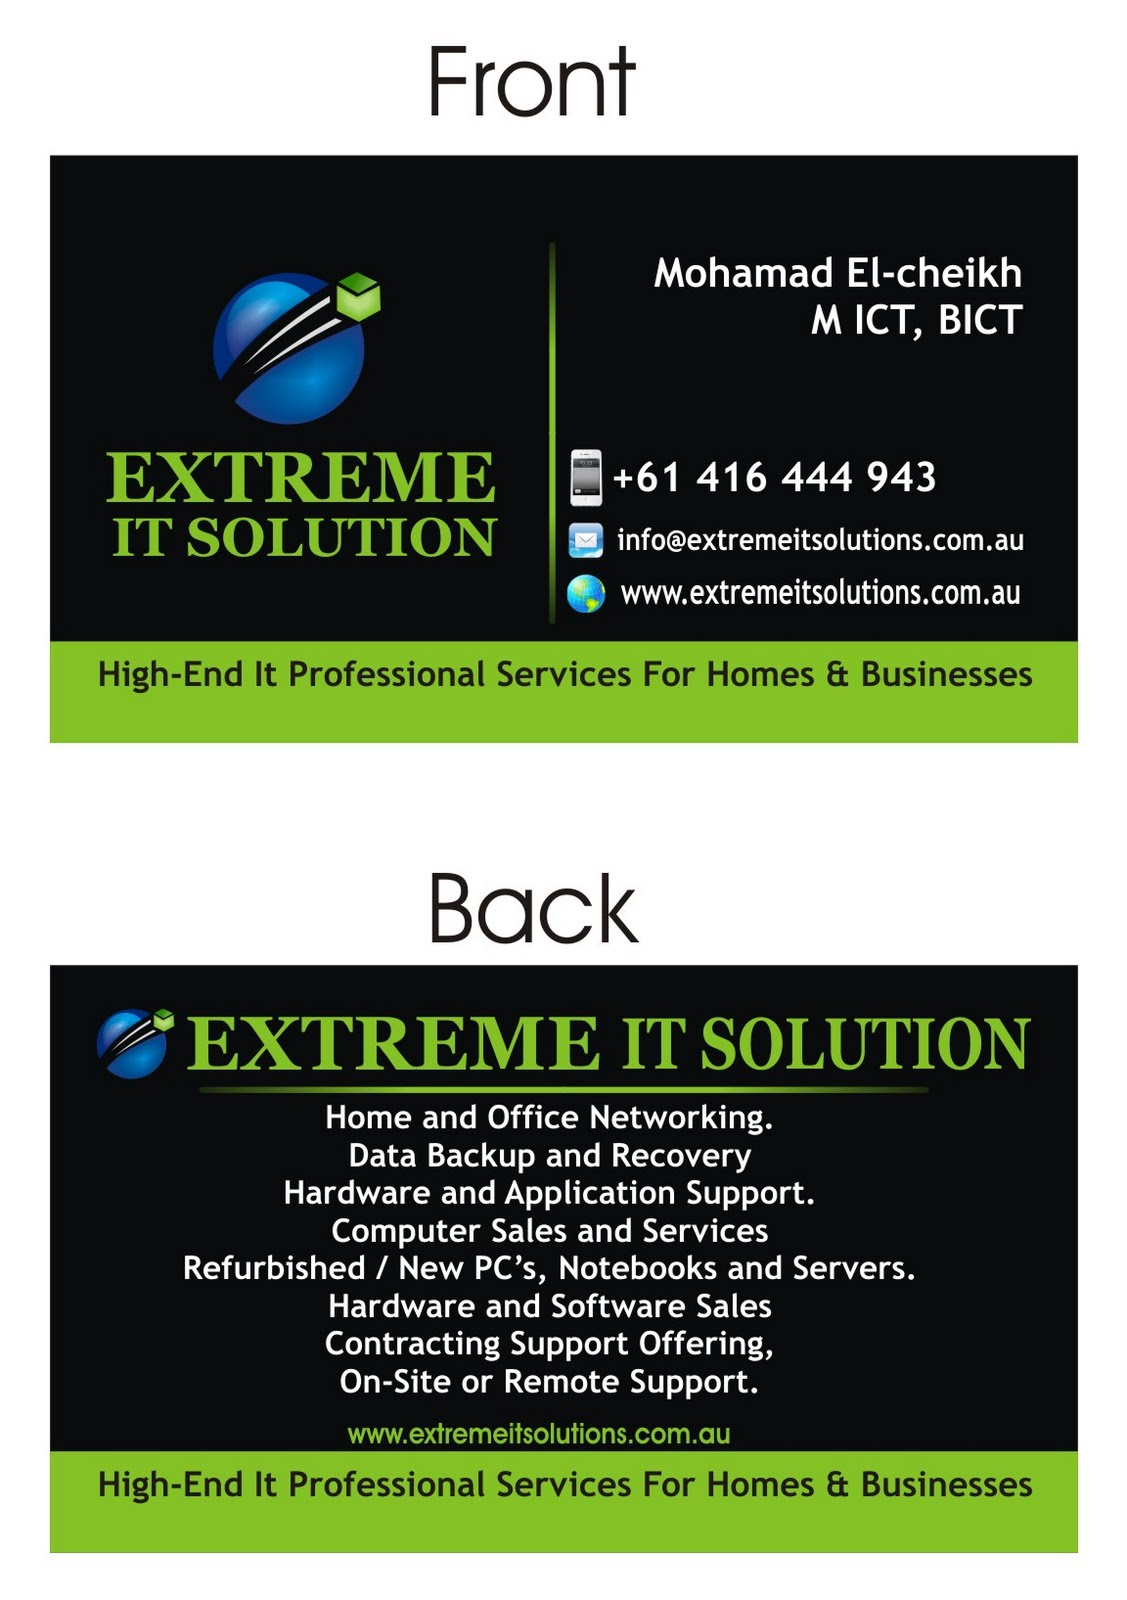 Extreme IT Solutions Business Cards Design By